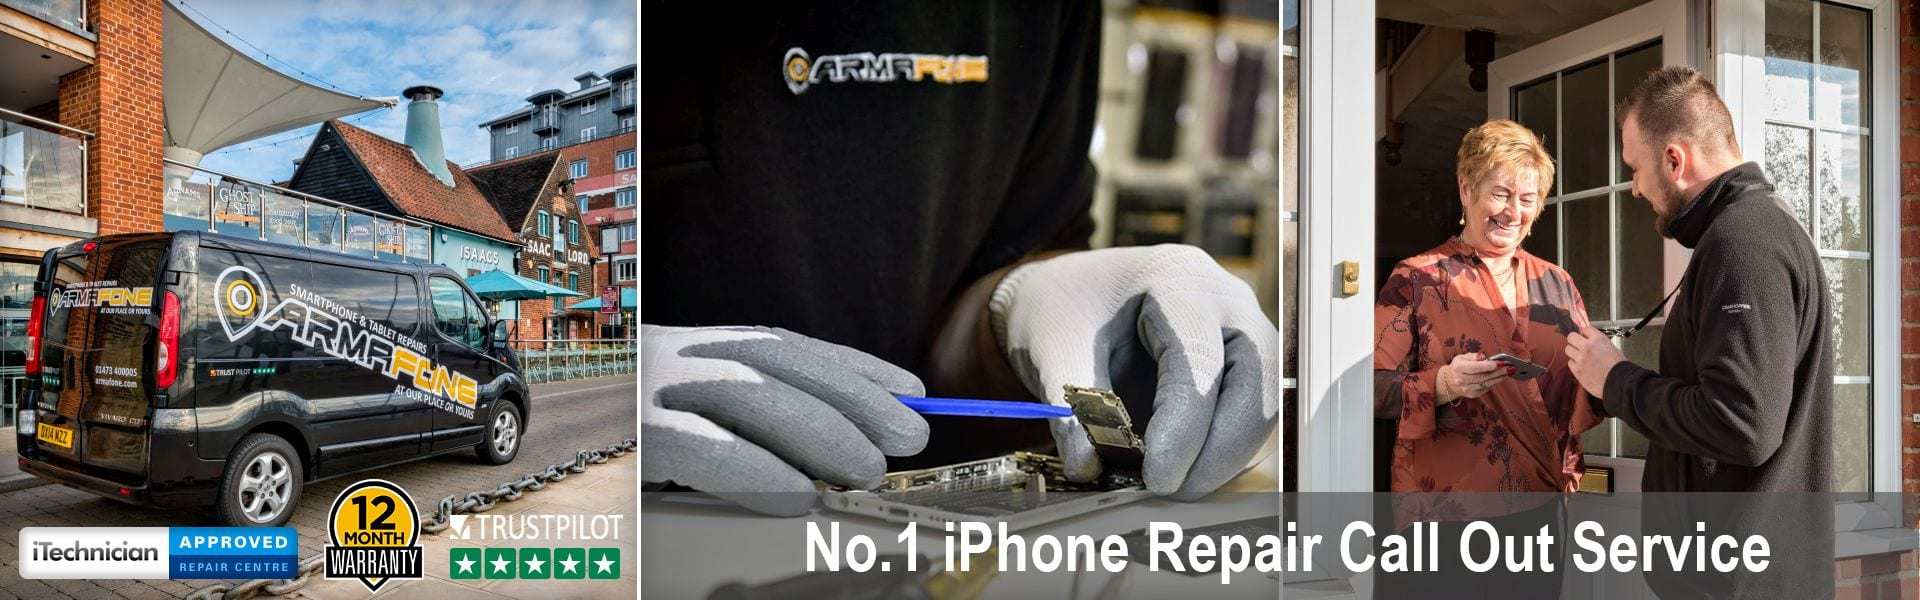 iphone repair call out service header image